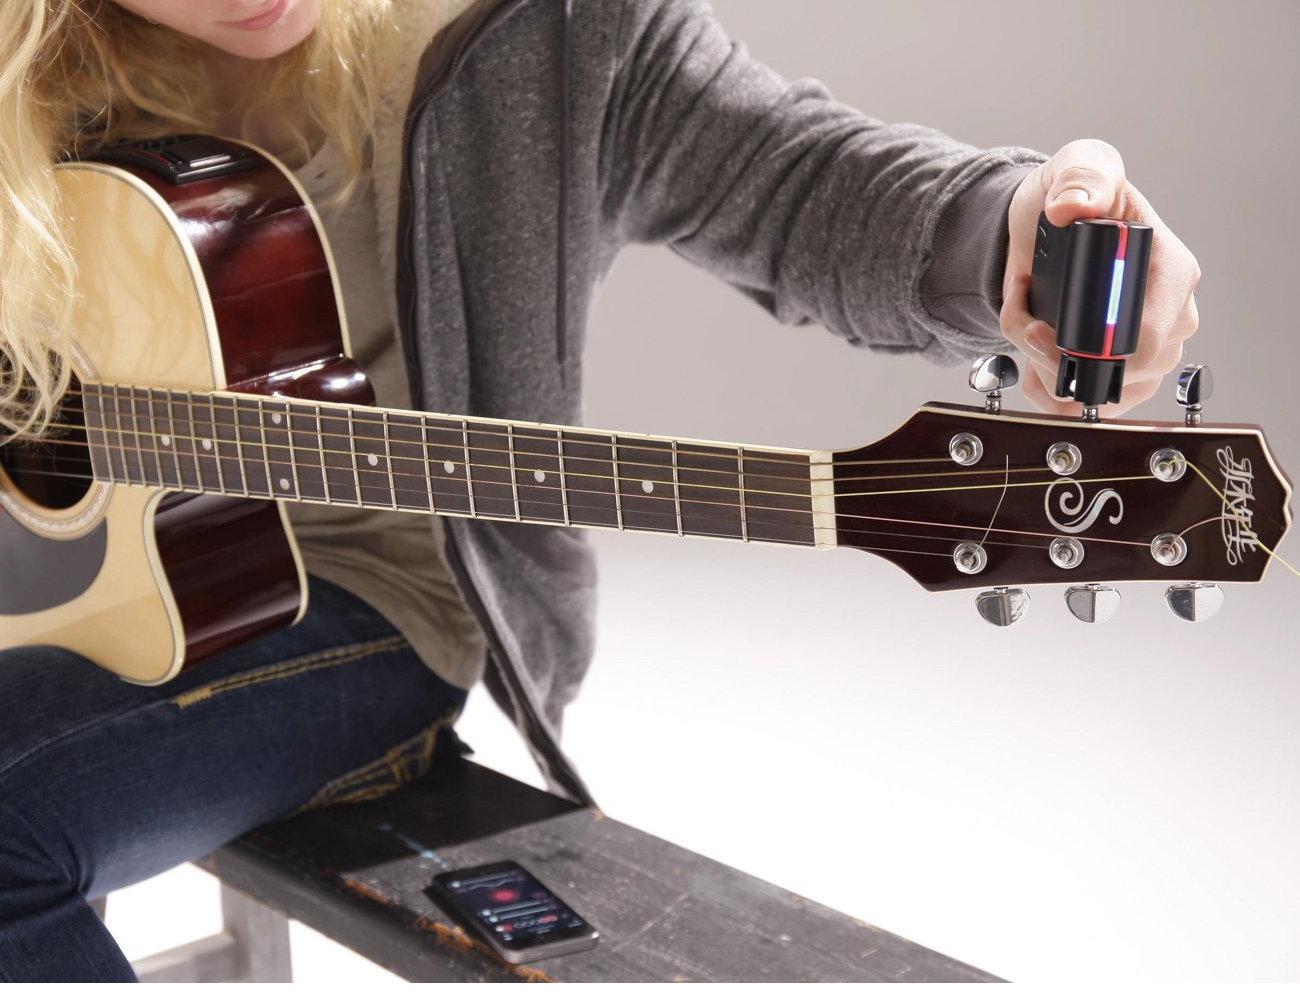 Roadie Tuner – Automatic Guitar Tuner